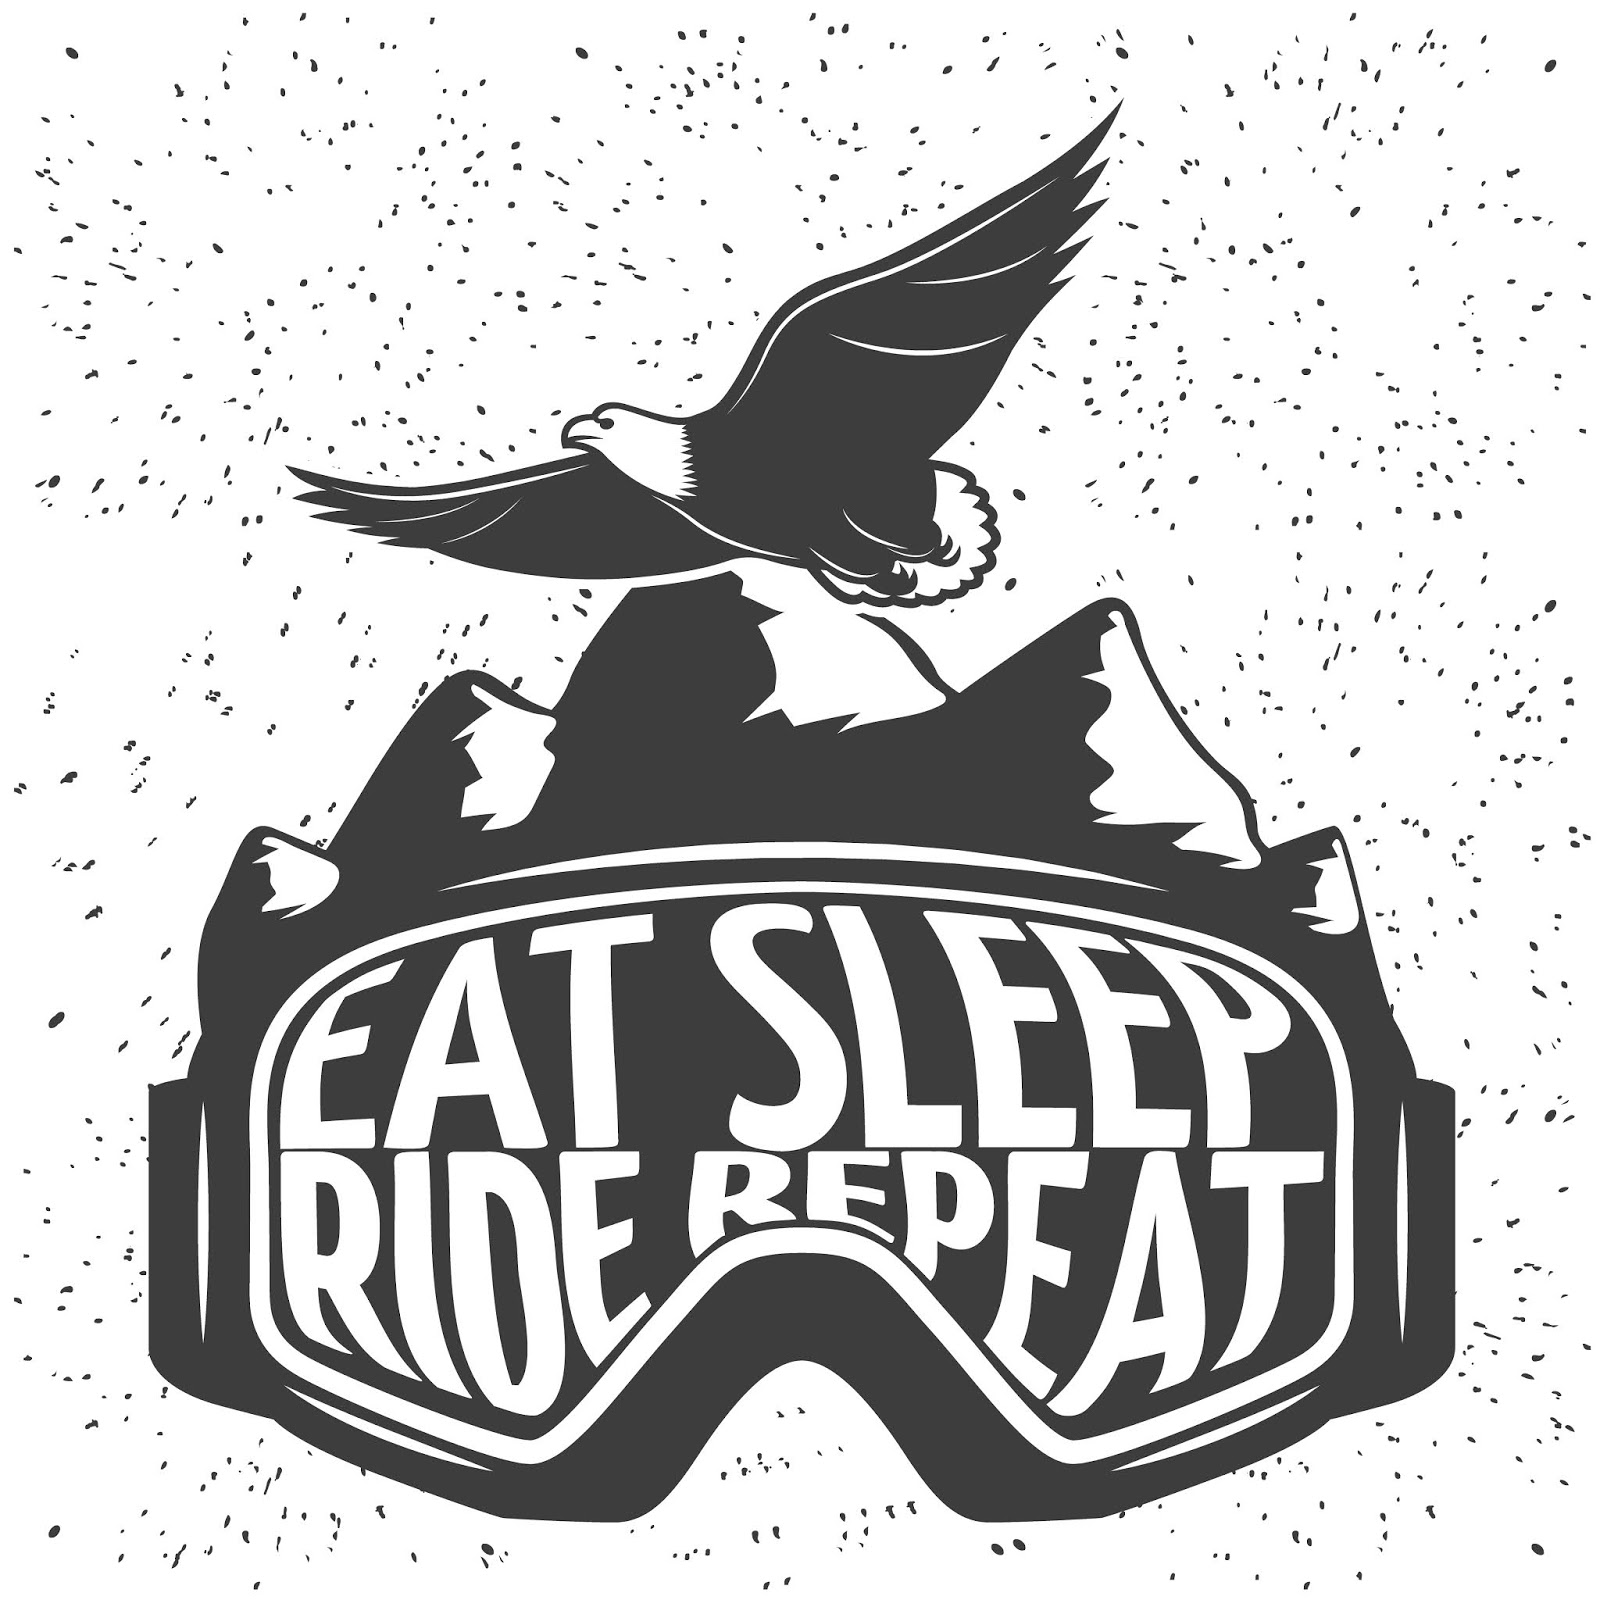 Snowboarding Mask With Headline Eat Sleep Ride Repeat Vector Illustration Free Download Vector CDR, AI, EPS and PNG Formats